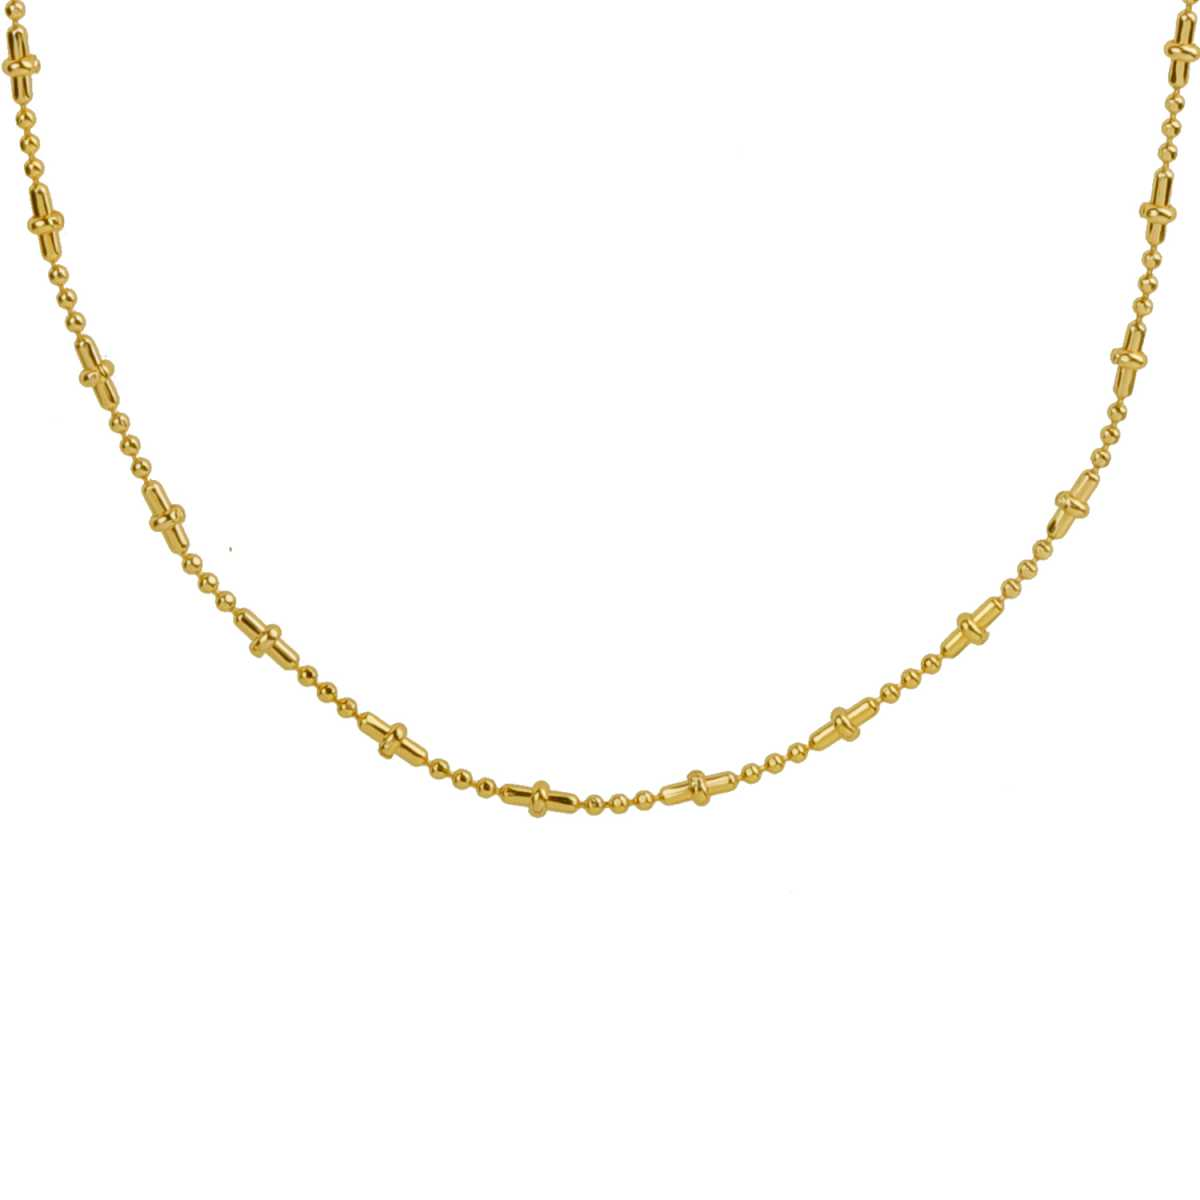 Silver Shine Classic Gold Plated Simple Design Chain Of 17 Inch Daily Wear Jewellry For Girls And Women